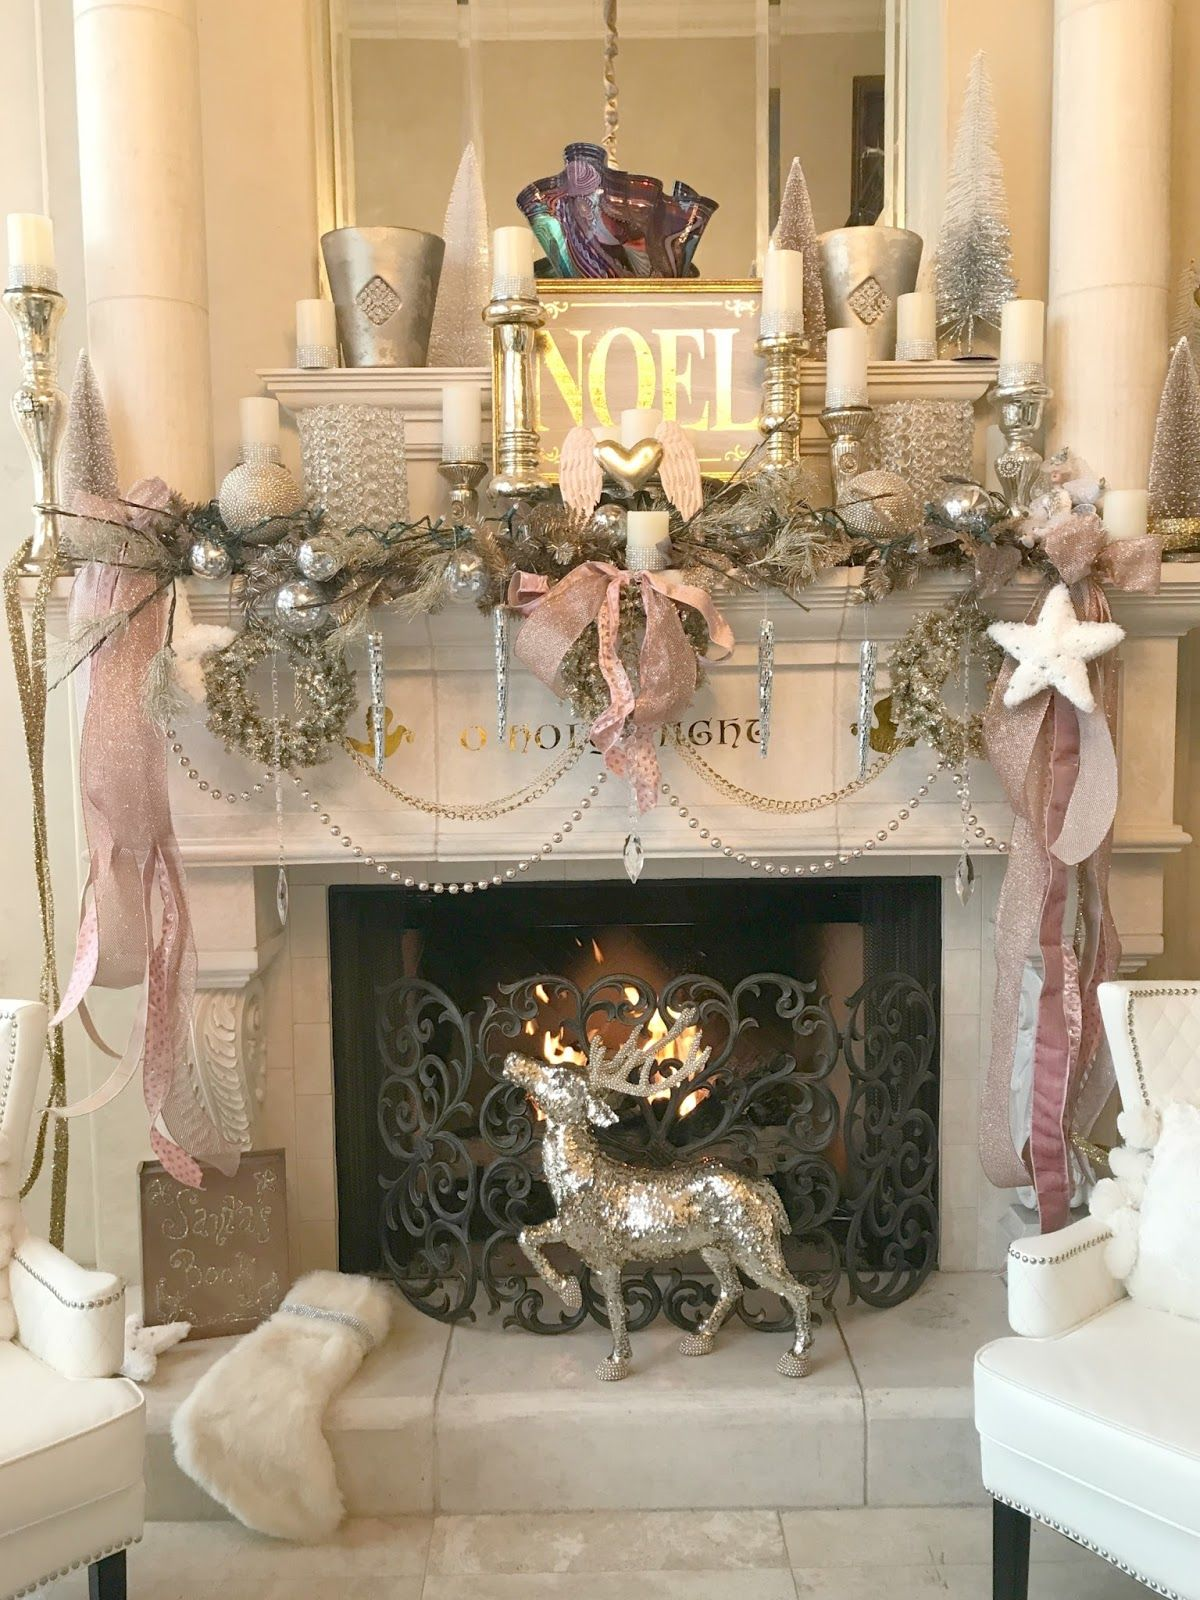 Pin by Katie Kavanagh on Christmas Pinterest